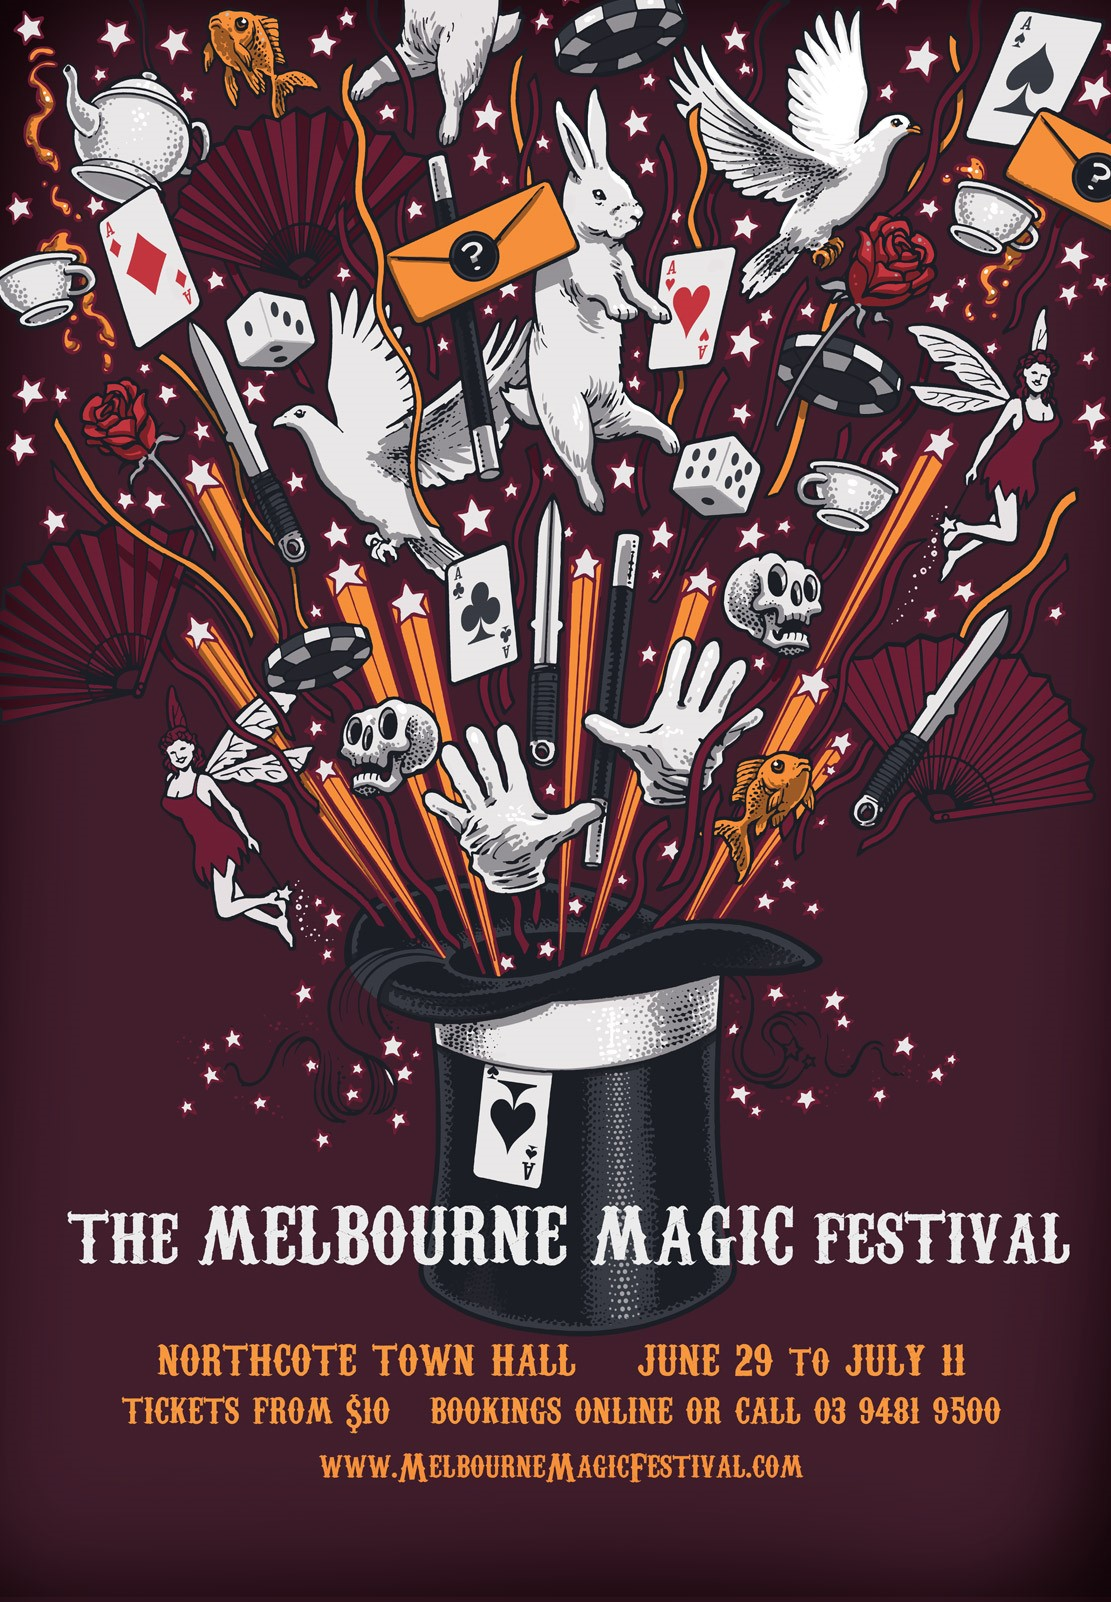 Melbourne Magic Festival